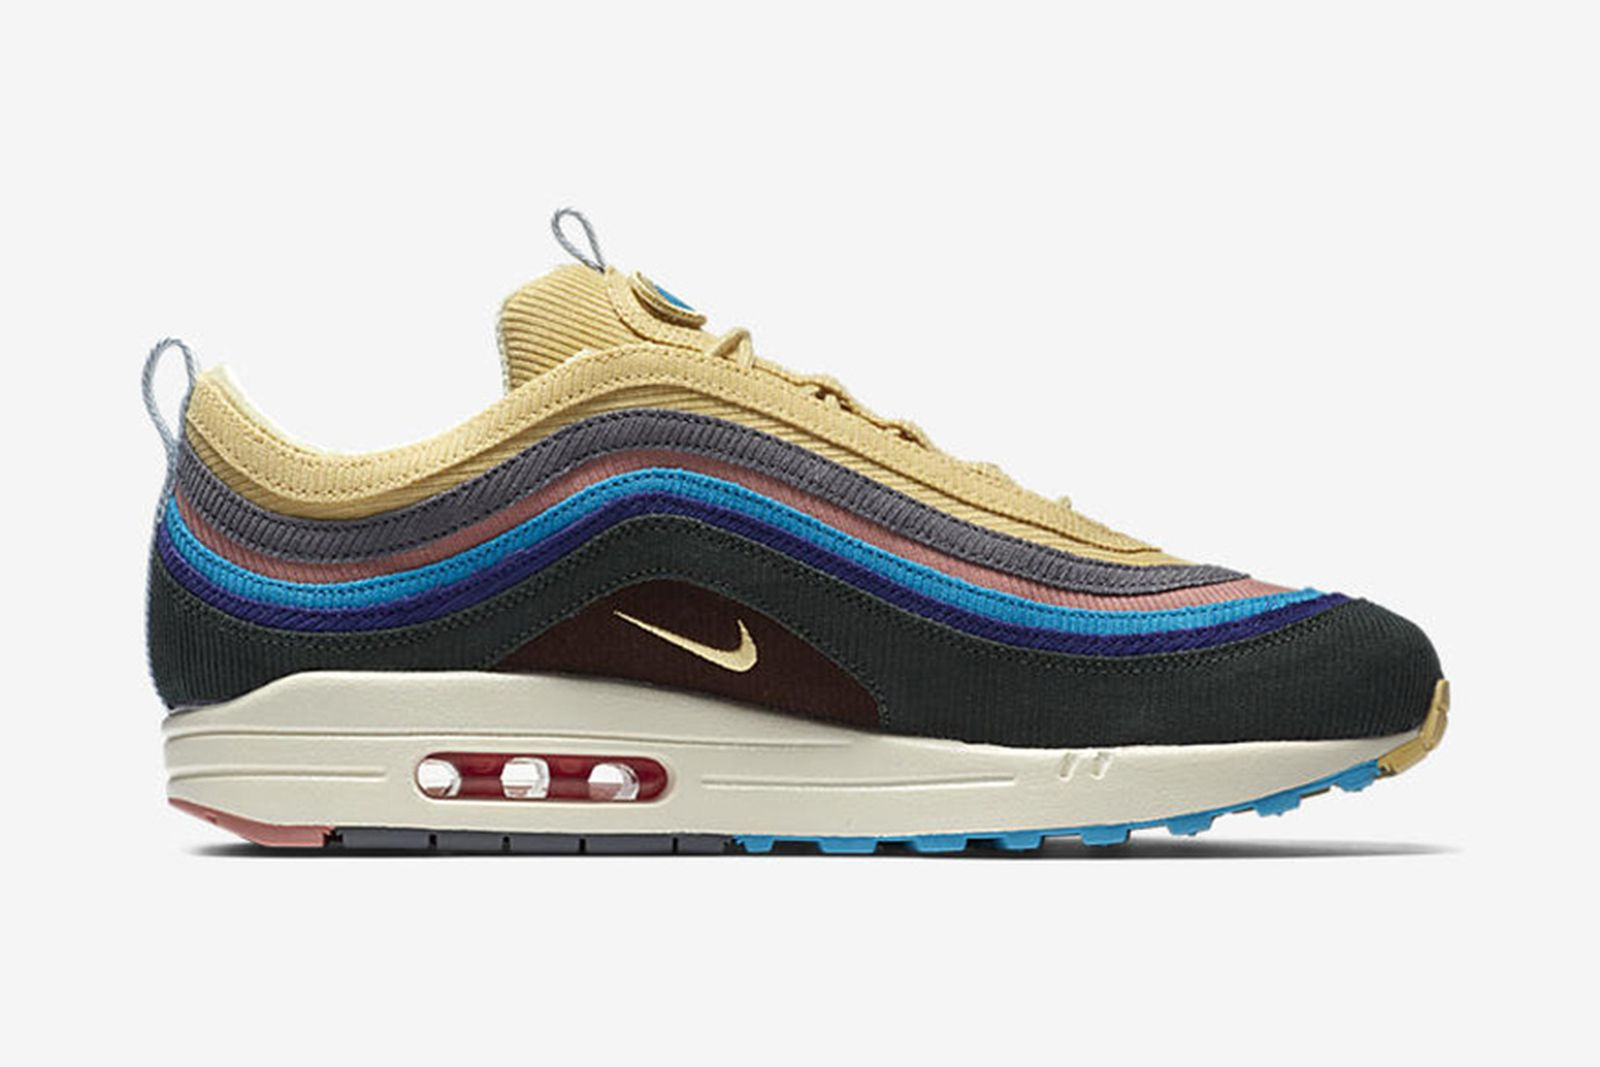 sean-wotherspoon-nike-air-max-1-97-release-date-price-03